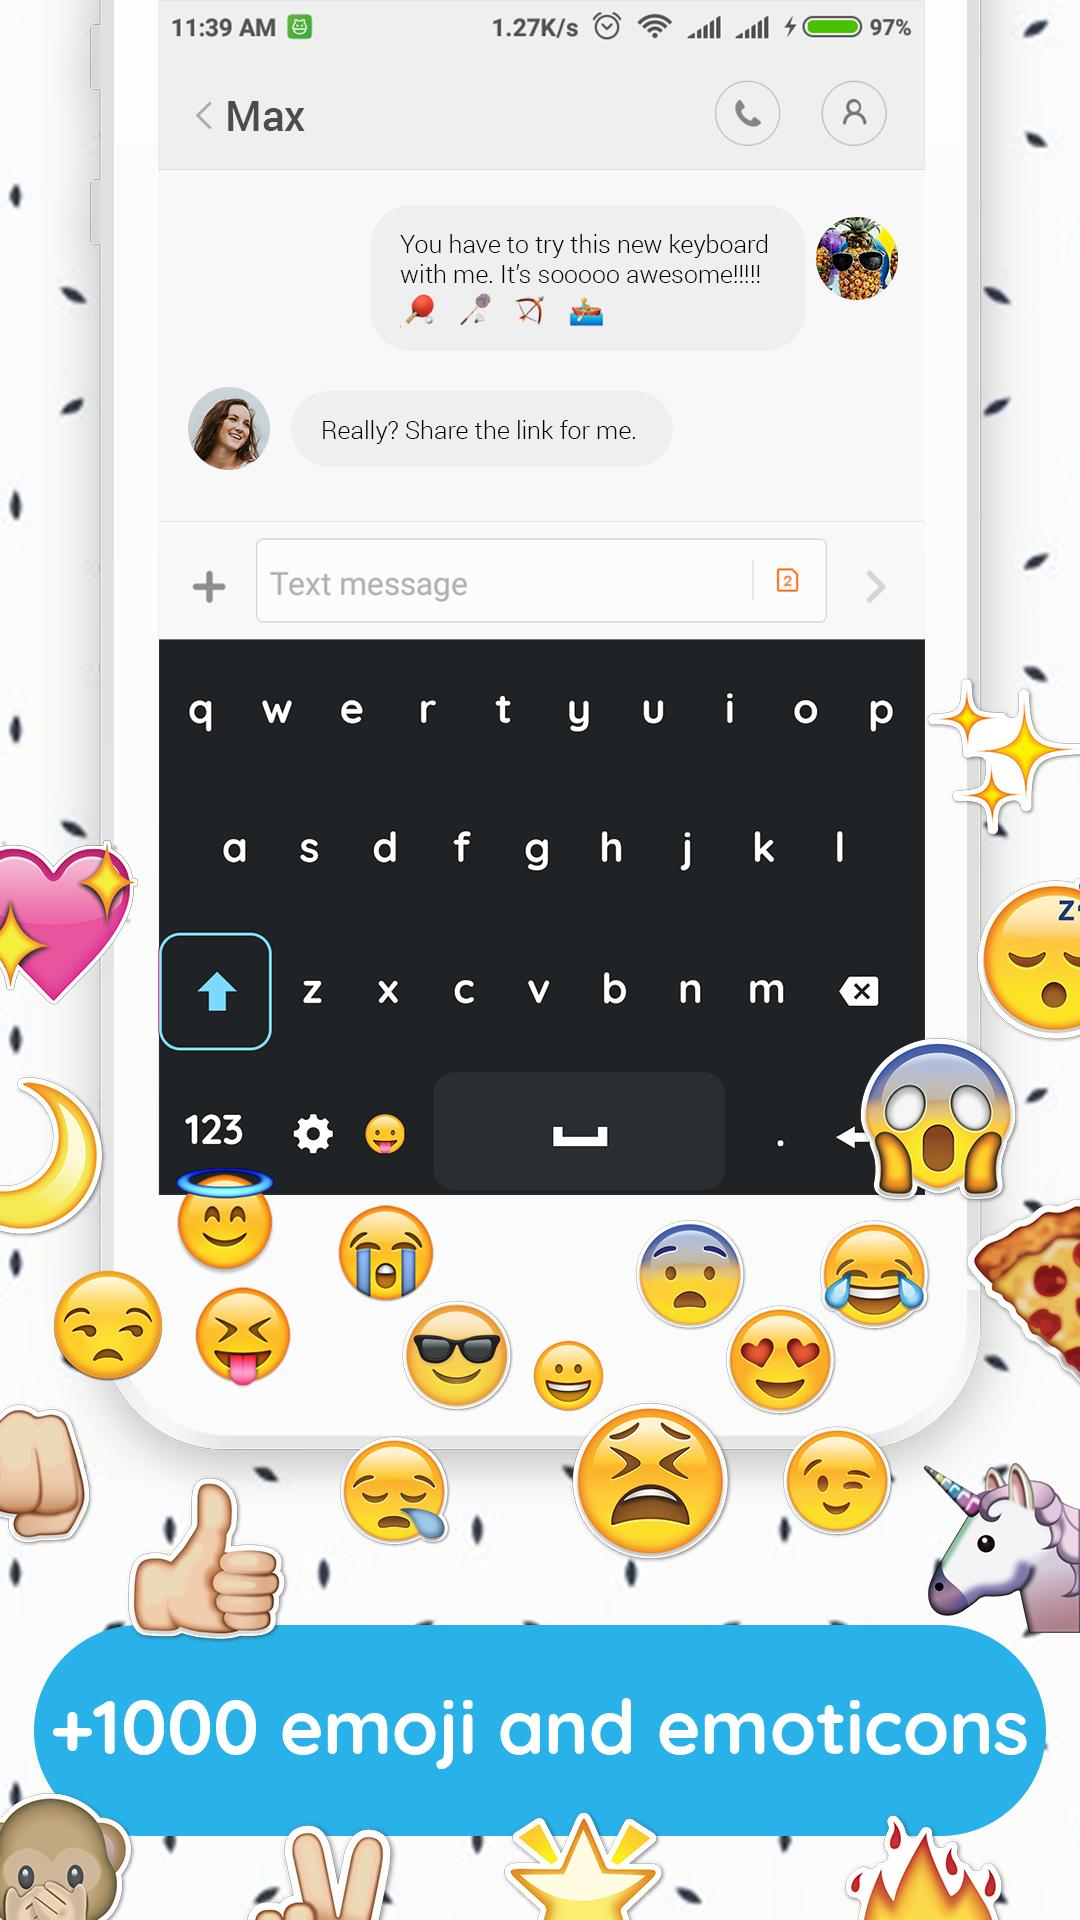 S8 Keyboard - Samsung Galaxy Keyboard for Android - APK Download